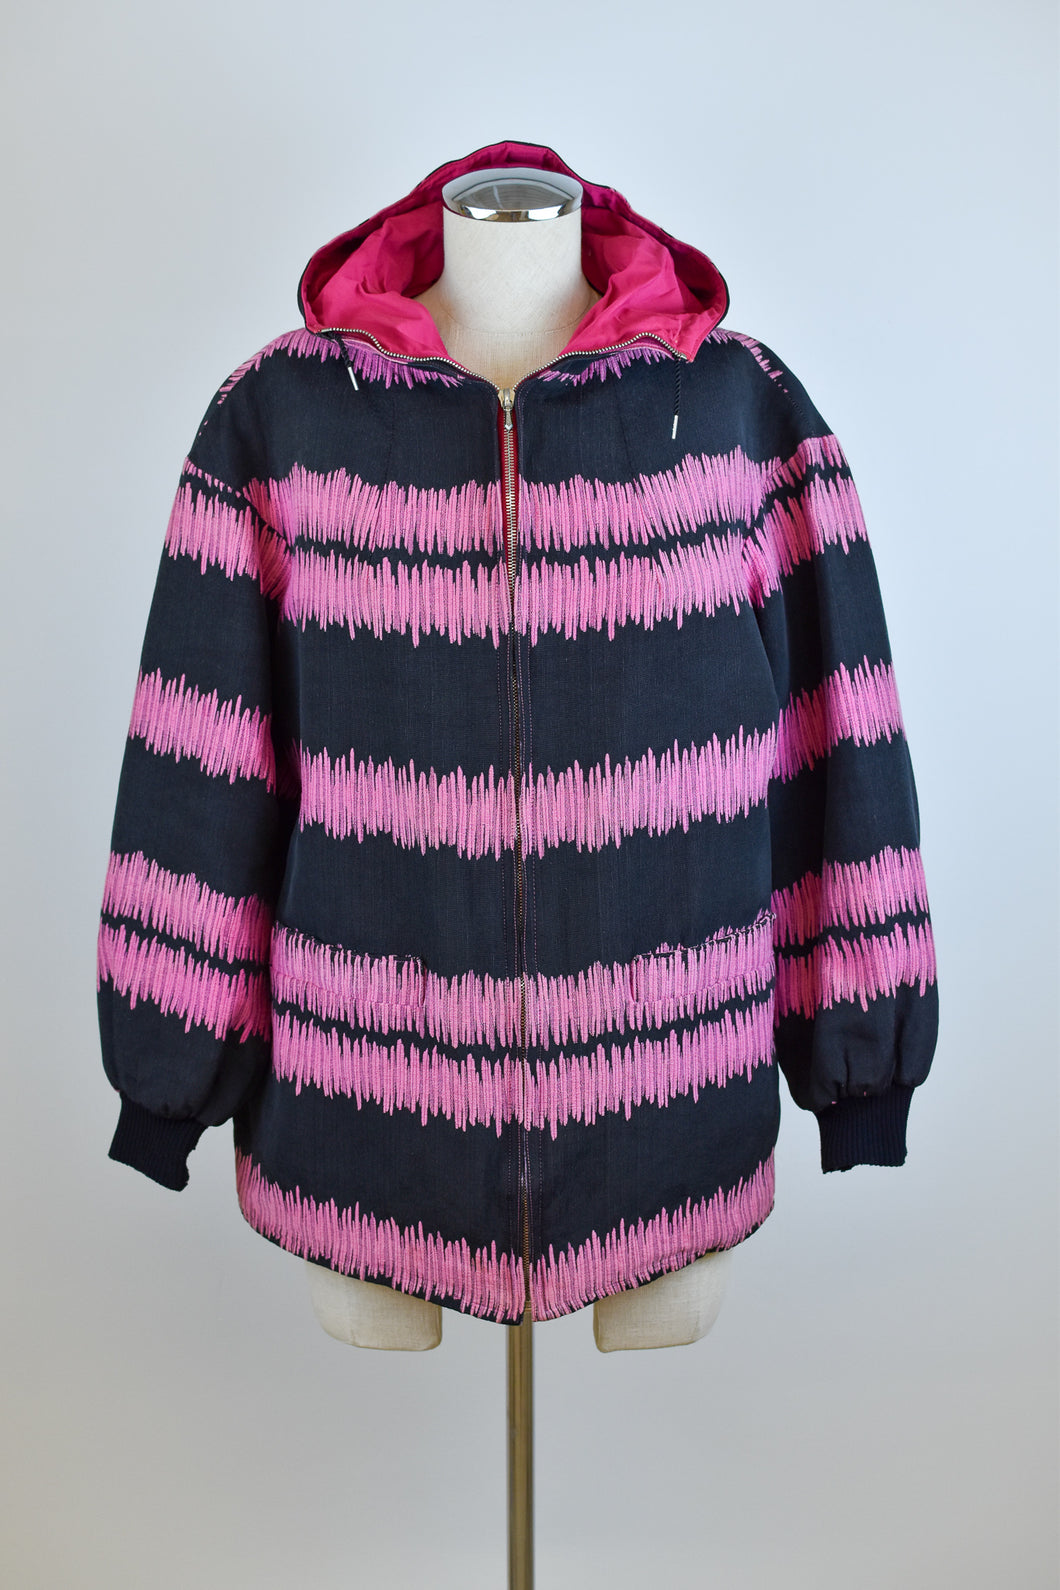 1980's | Croydon | Pink and Black Ski Jacket